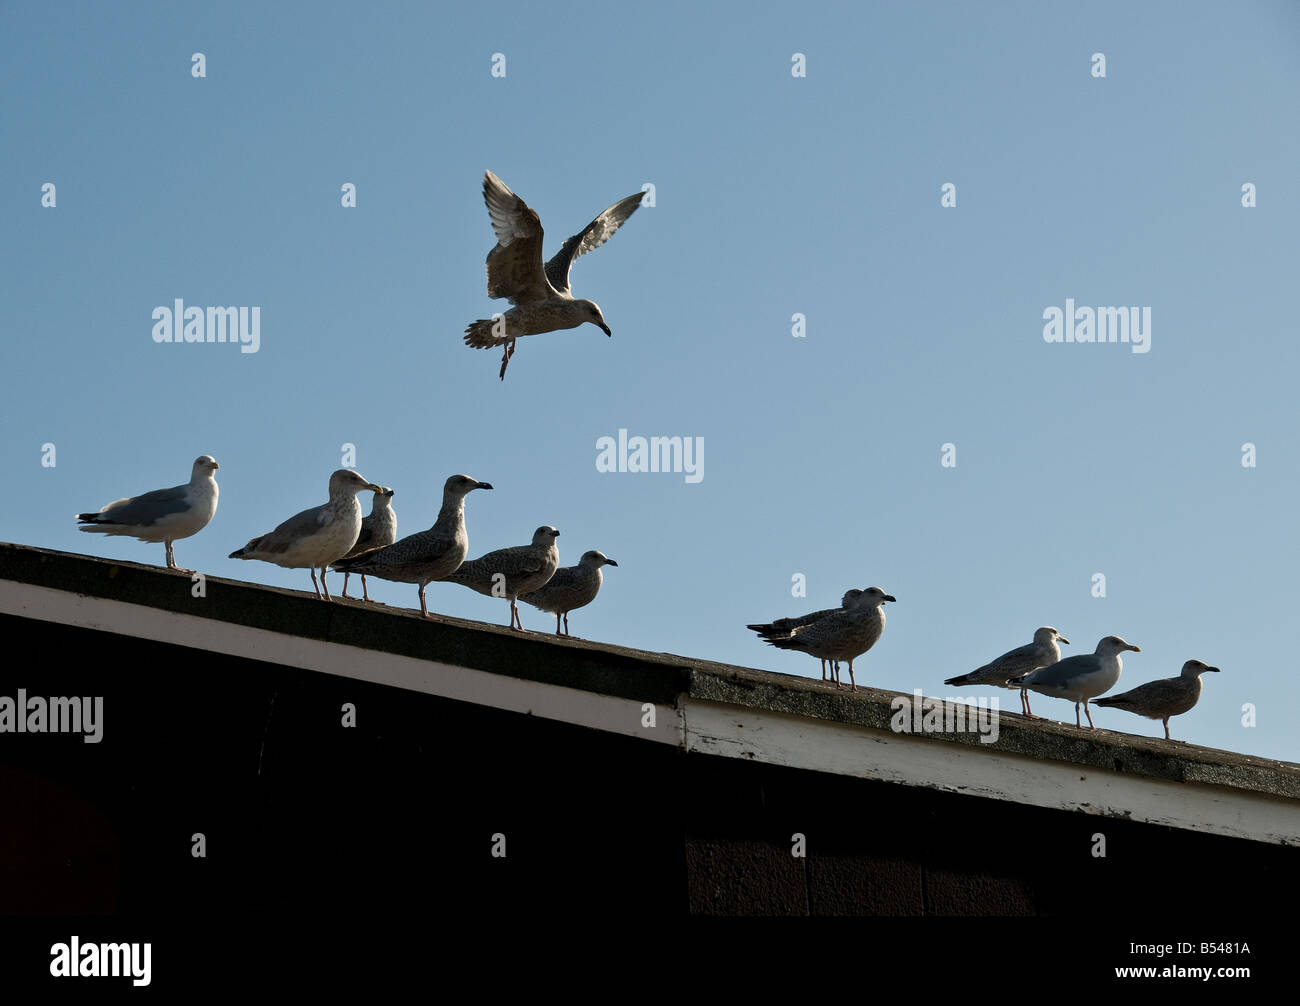 Seagulls On A Roof Stock Photo Royalty Free Image